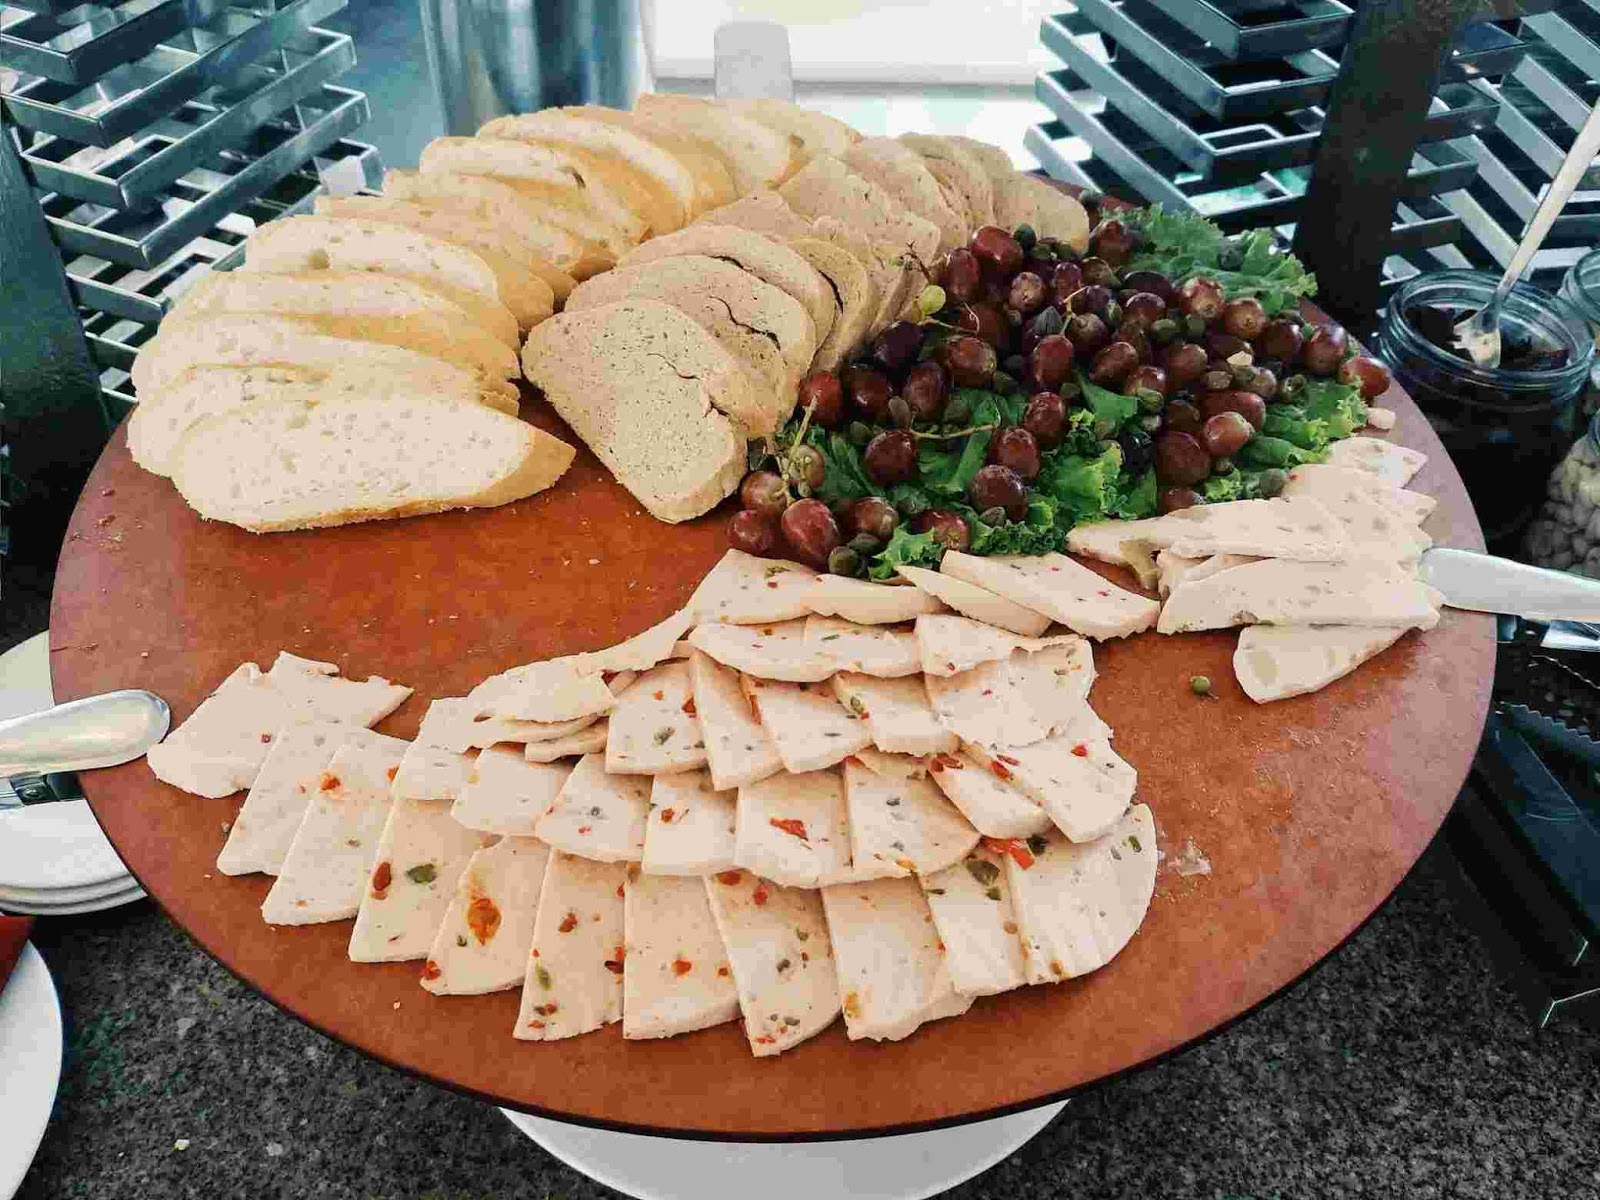 Cold cuts at Acaci Cafe in Acacia Hotel